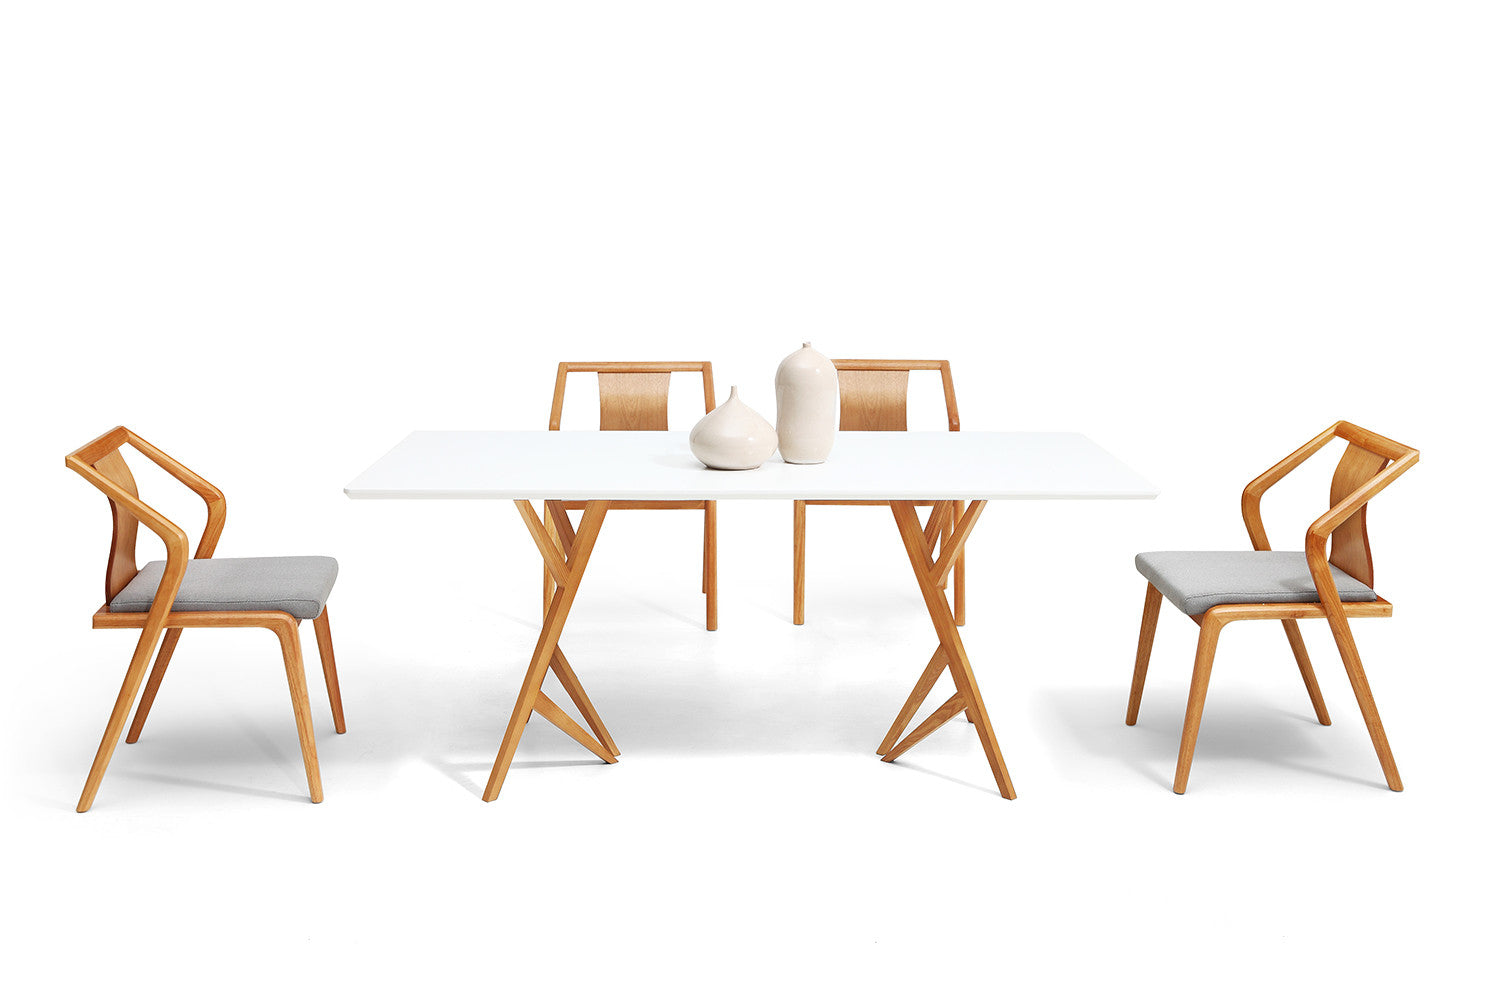 Table de salle manger design scandinave vispa dewarens for Salle a manger blanche design